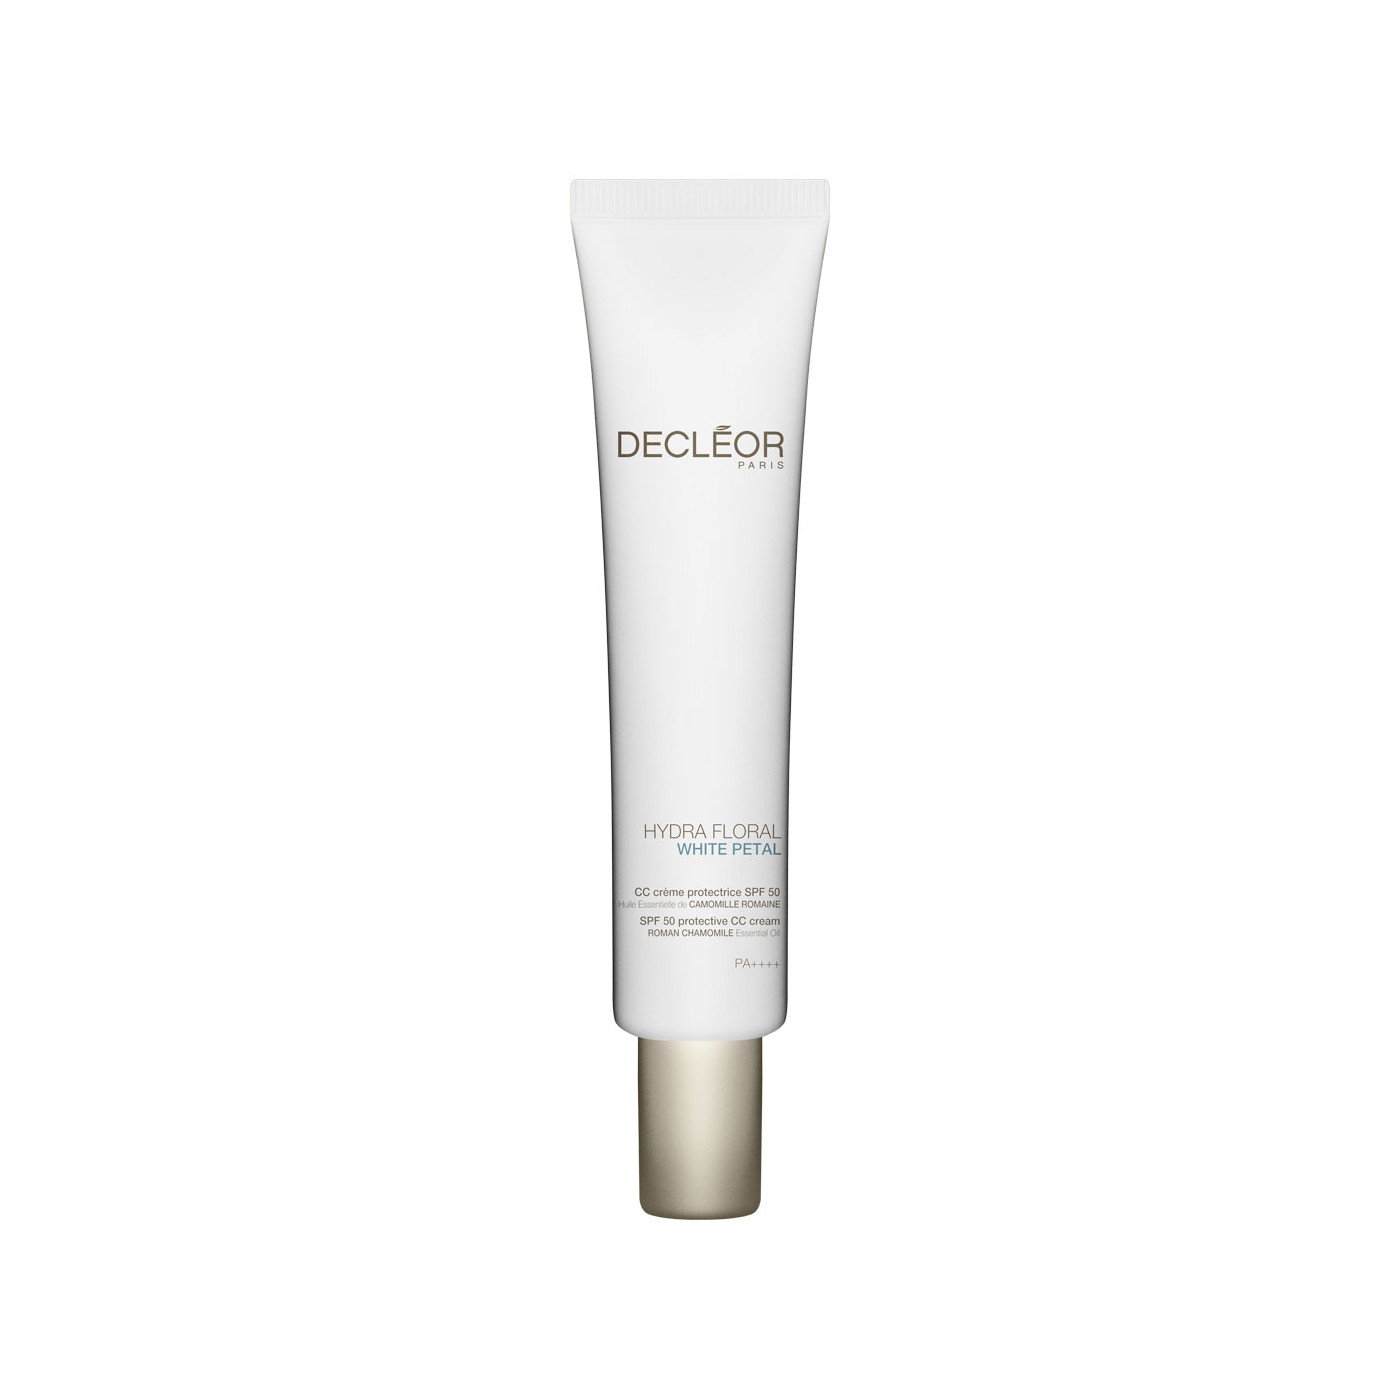 Hydra Floral White Petal CC Cream SPF 50 40 ml